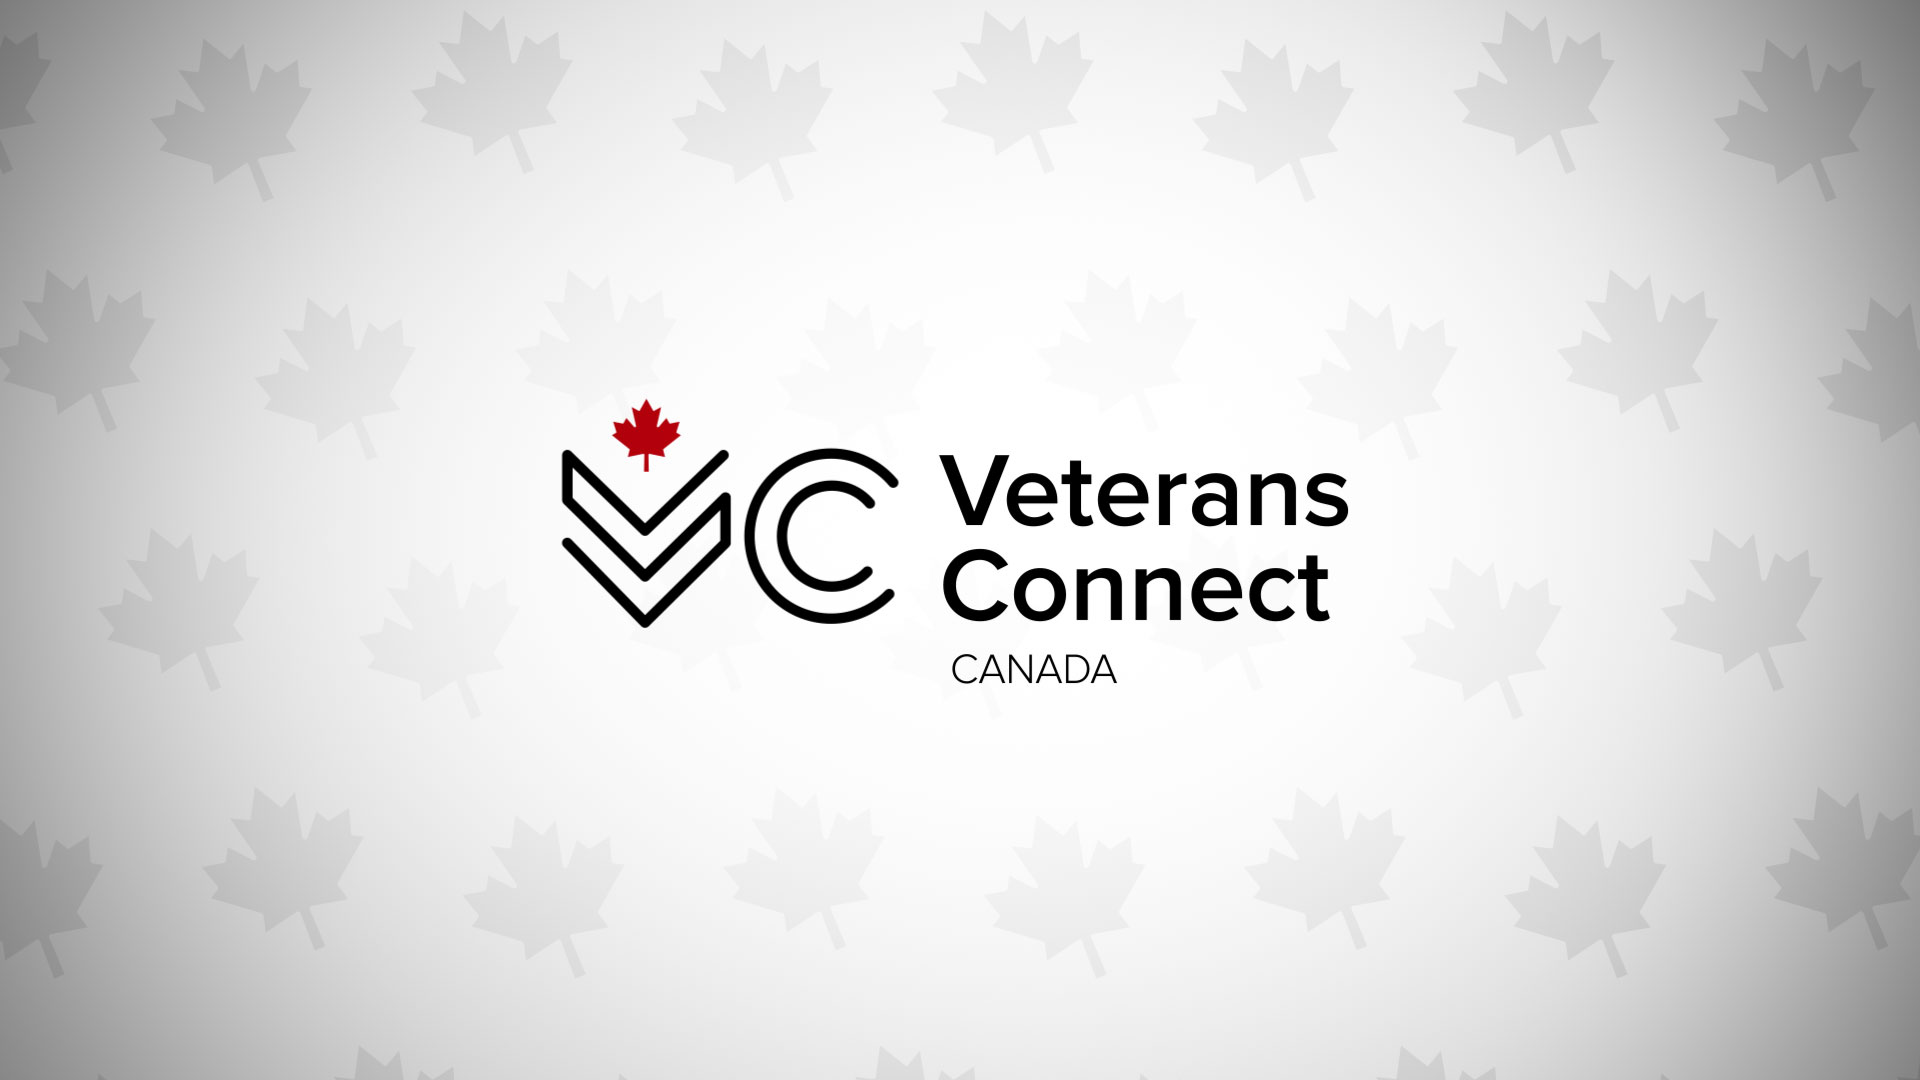 Veterans Connect Canada